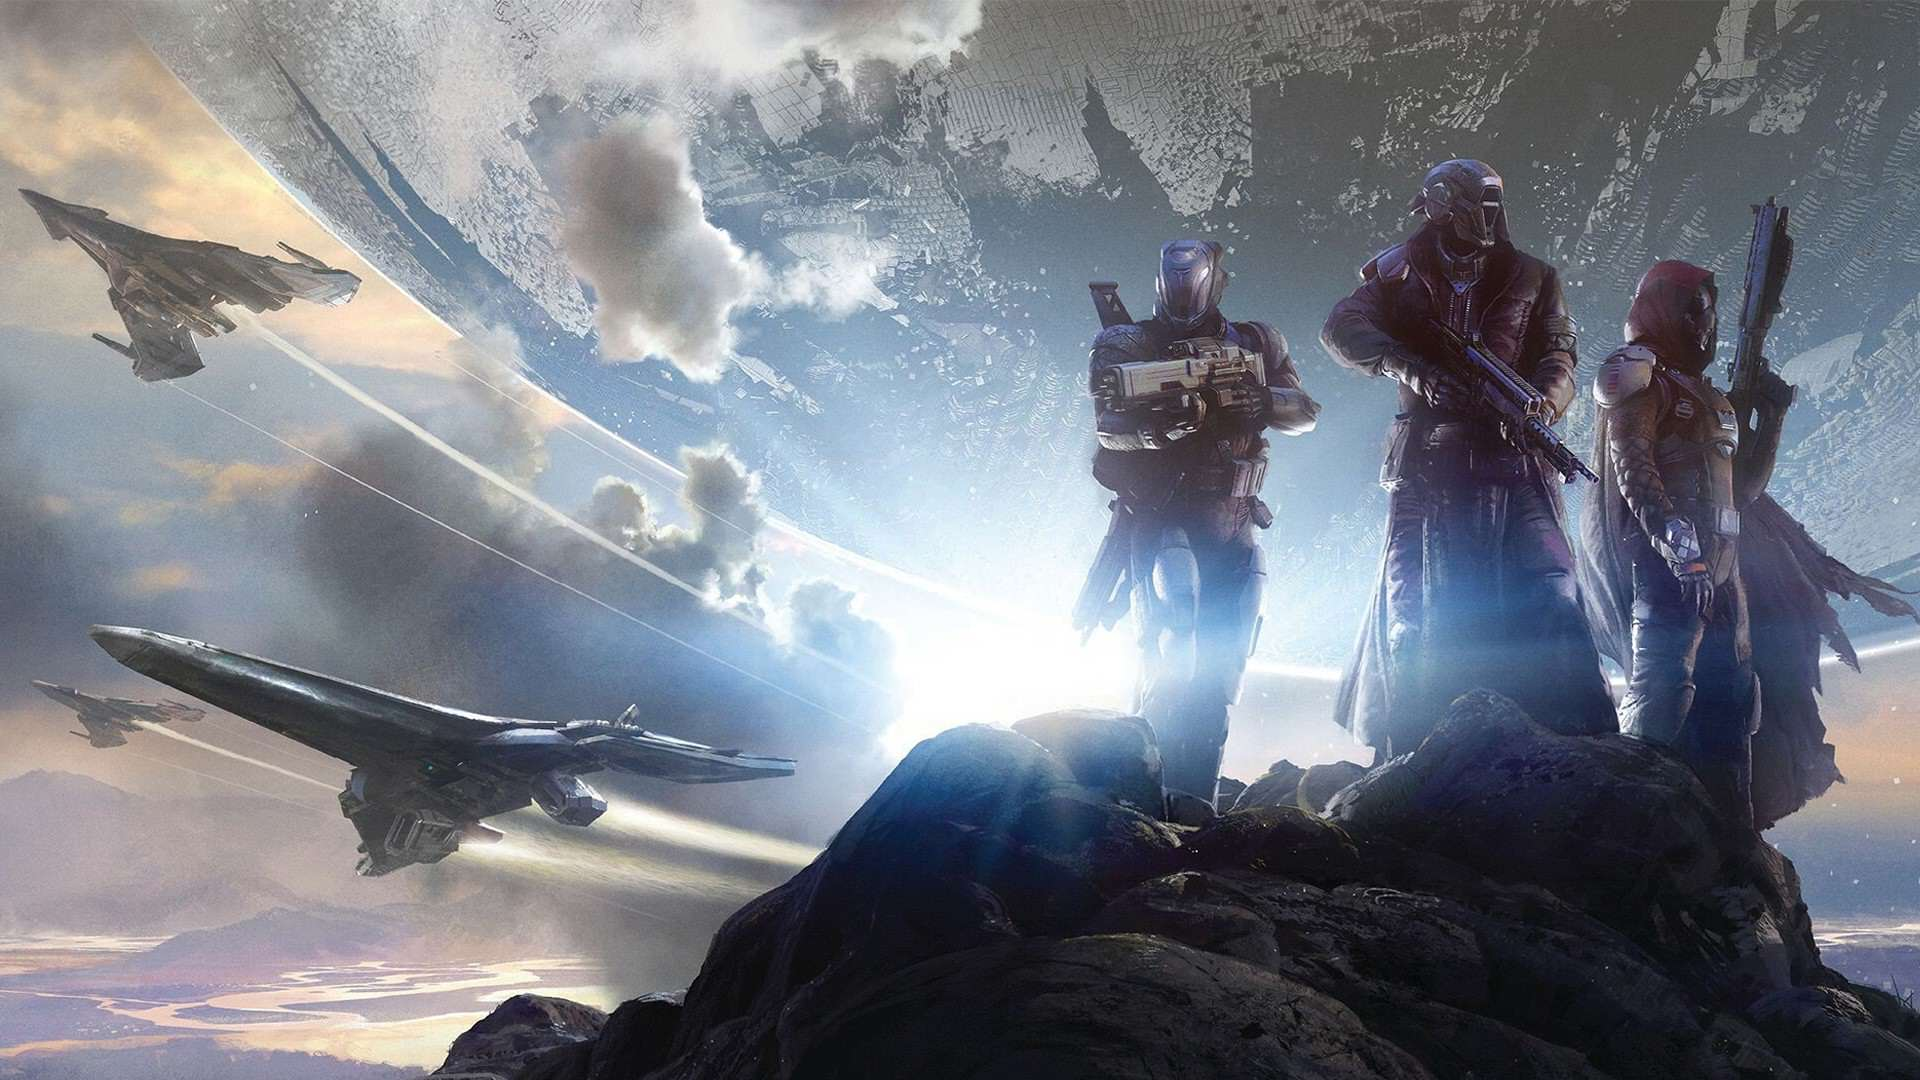 Destiny Rise Of Iron Wallpaper: Destiny-rise-of-iron-wallpaper-guardians